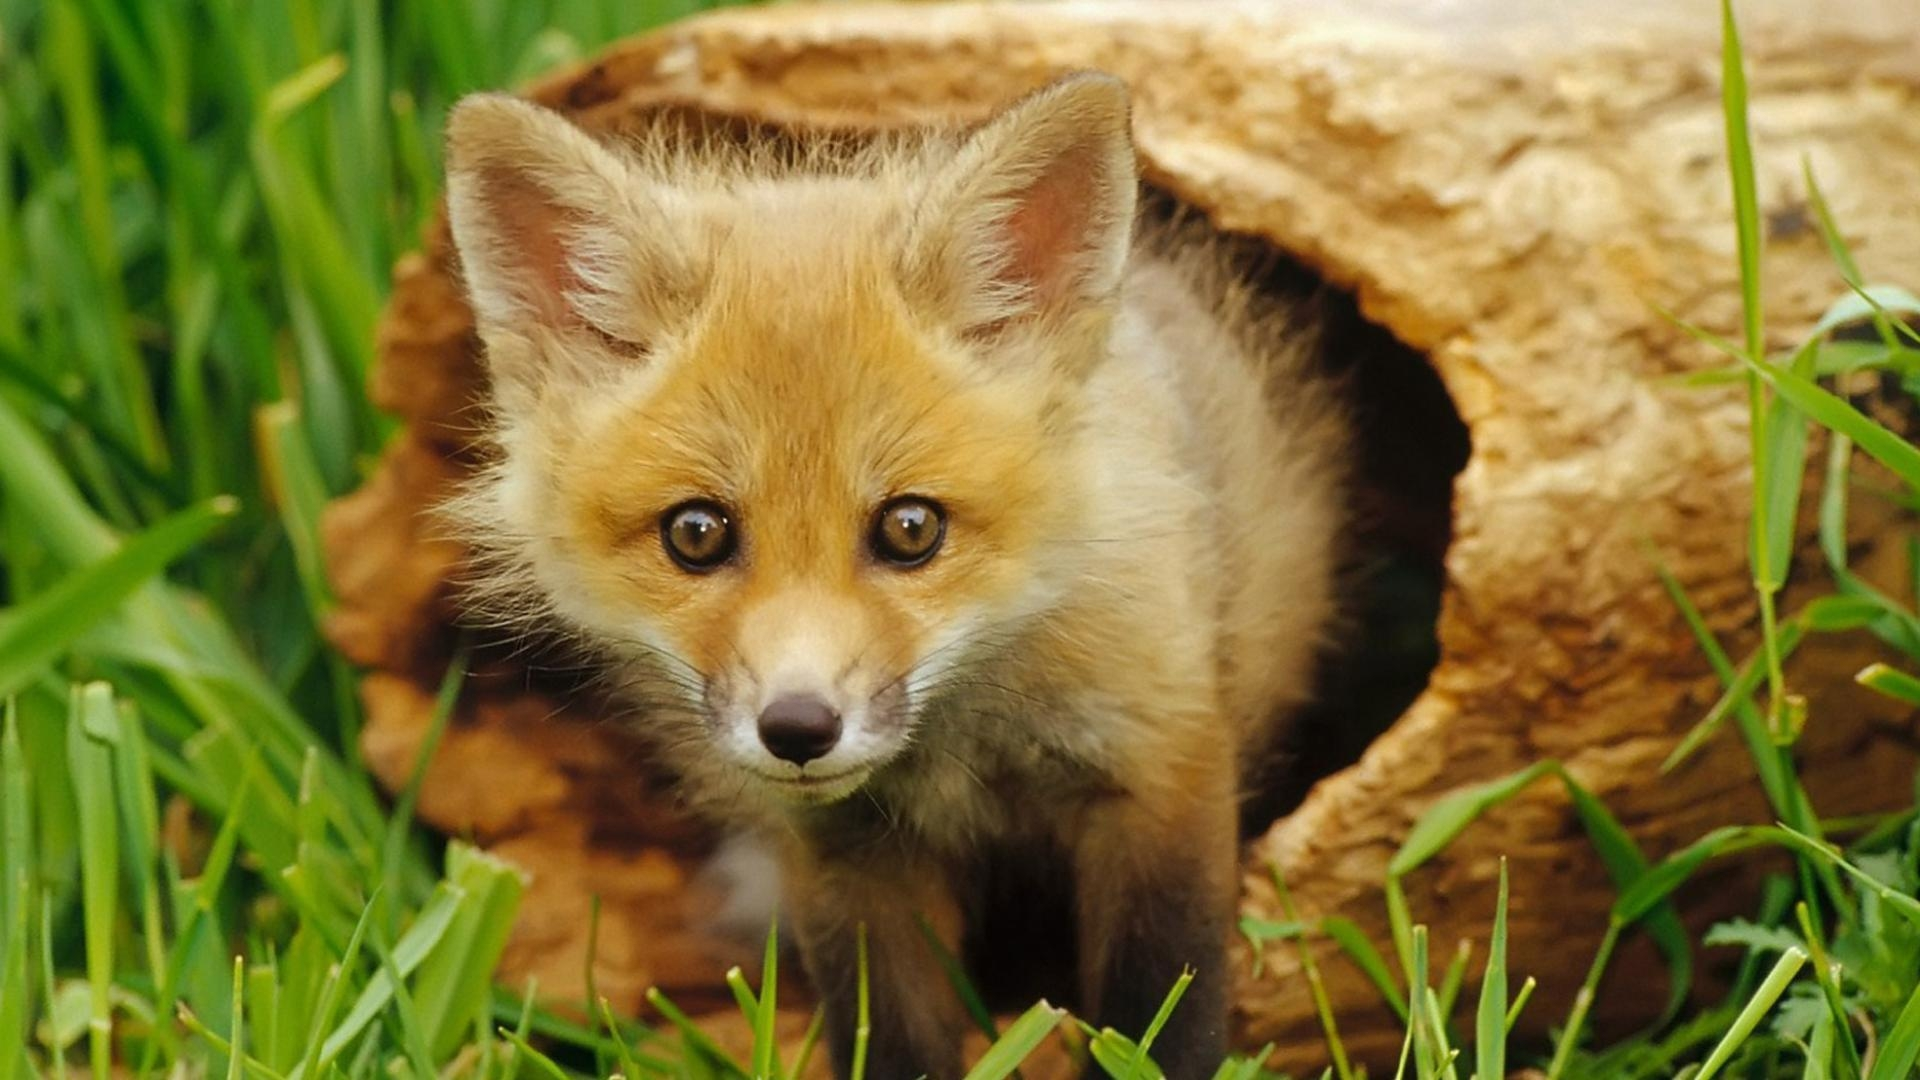 37223 download wallpaper Animals, Fox screensavers and pictures for free